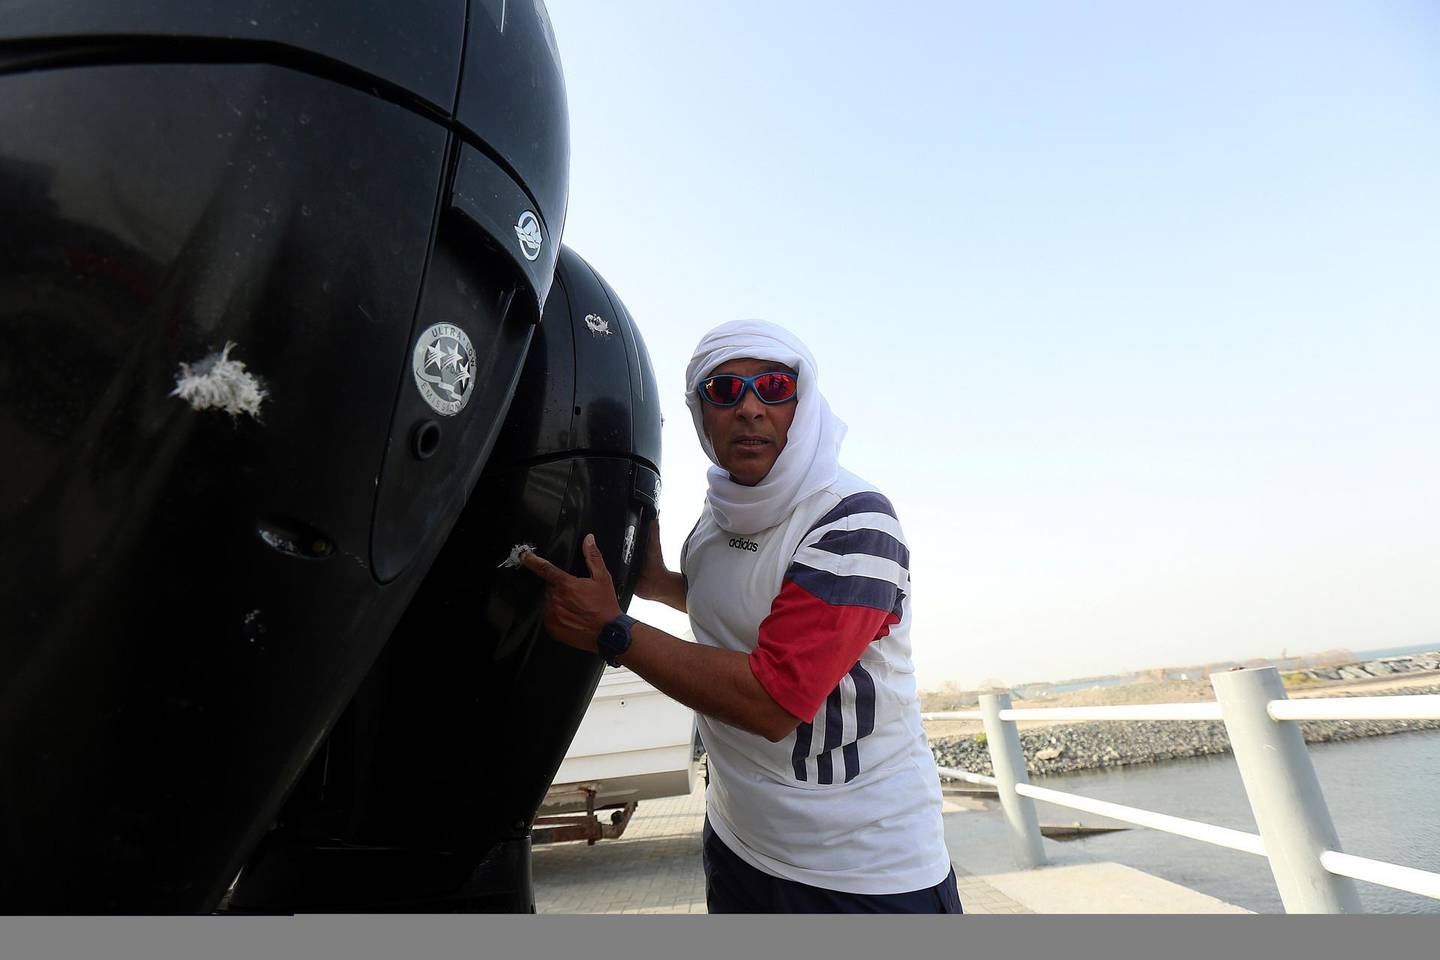 Fujairah, April 26, 2018: Yousef Baroun points out at the bullet shots fired by pirates during the interview at the fisherman port in Fujairah . Satish Kumar for the National / Story by Ruba Haza